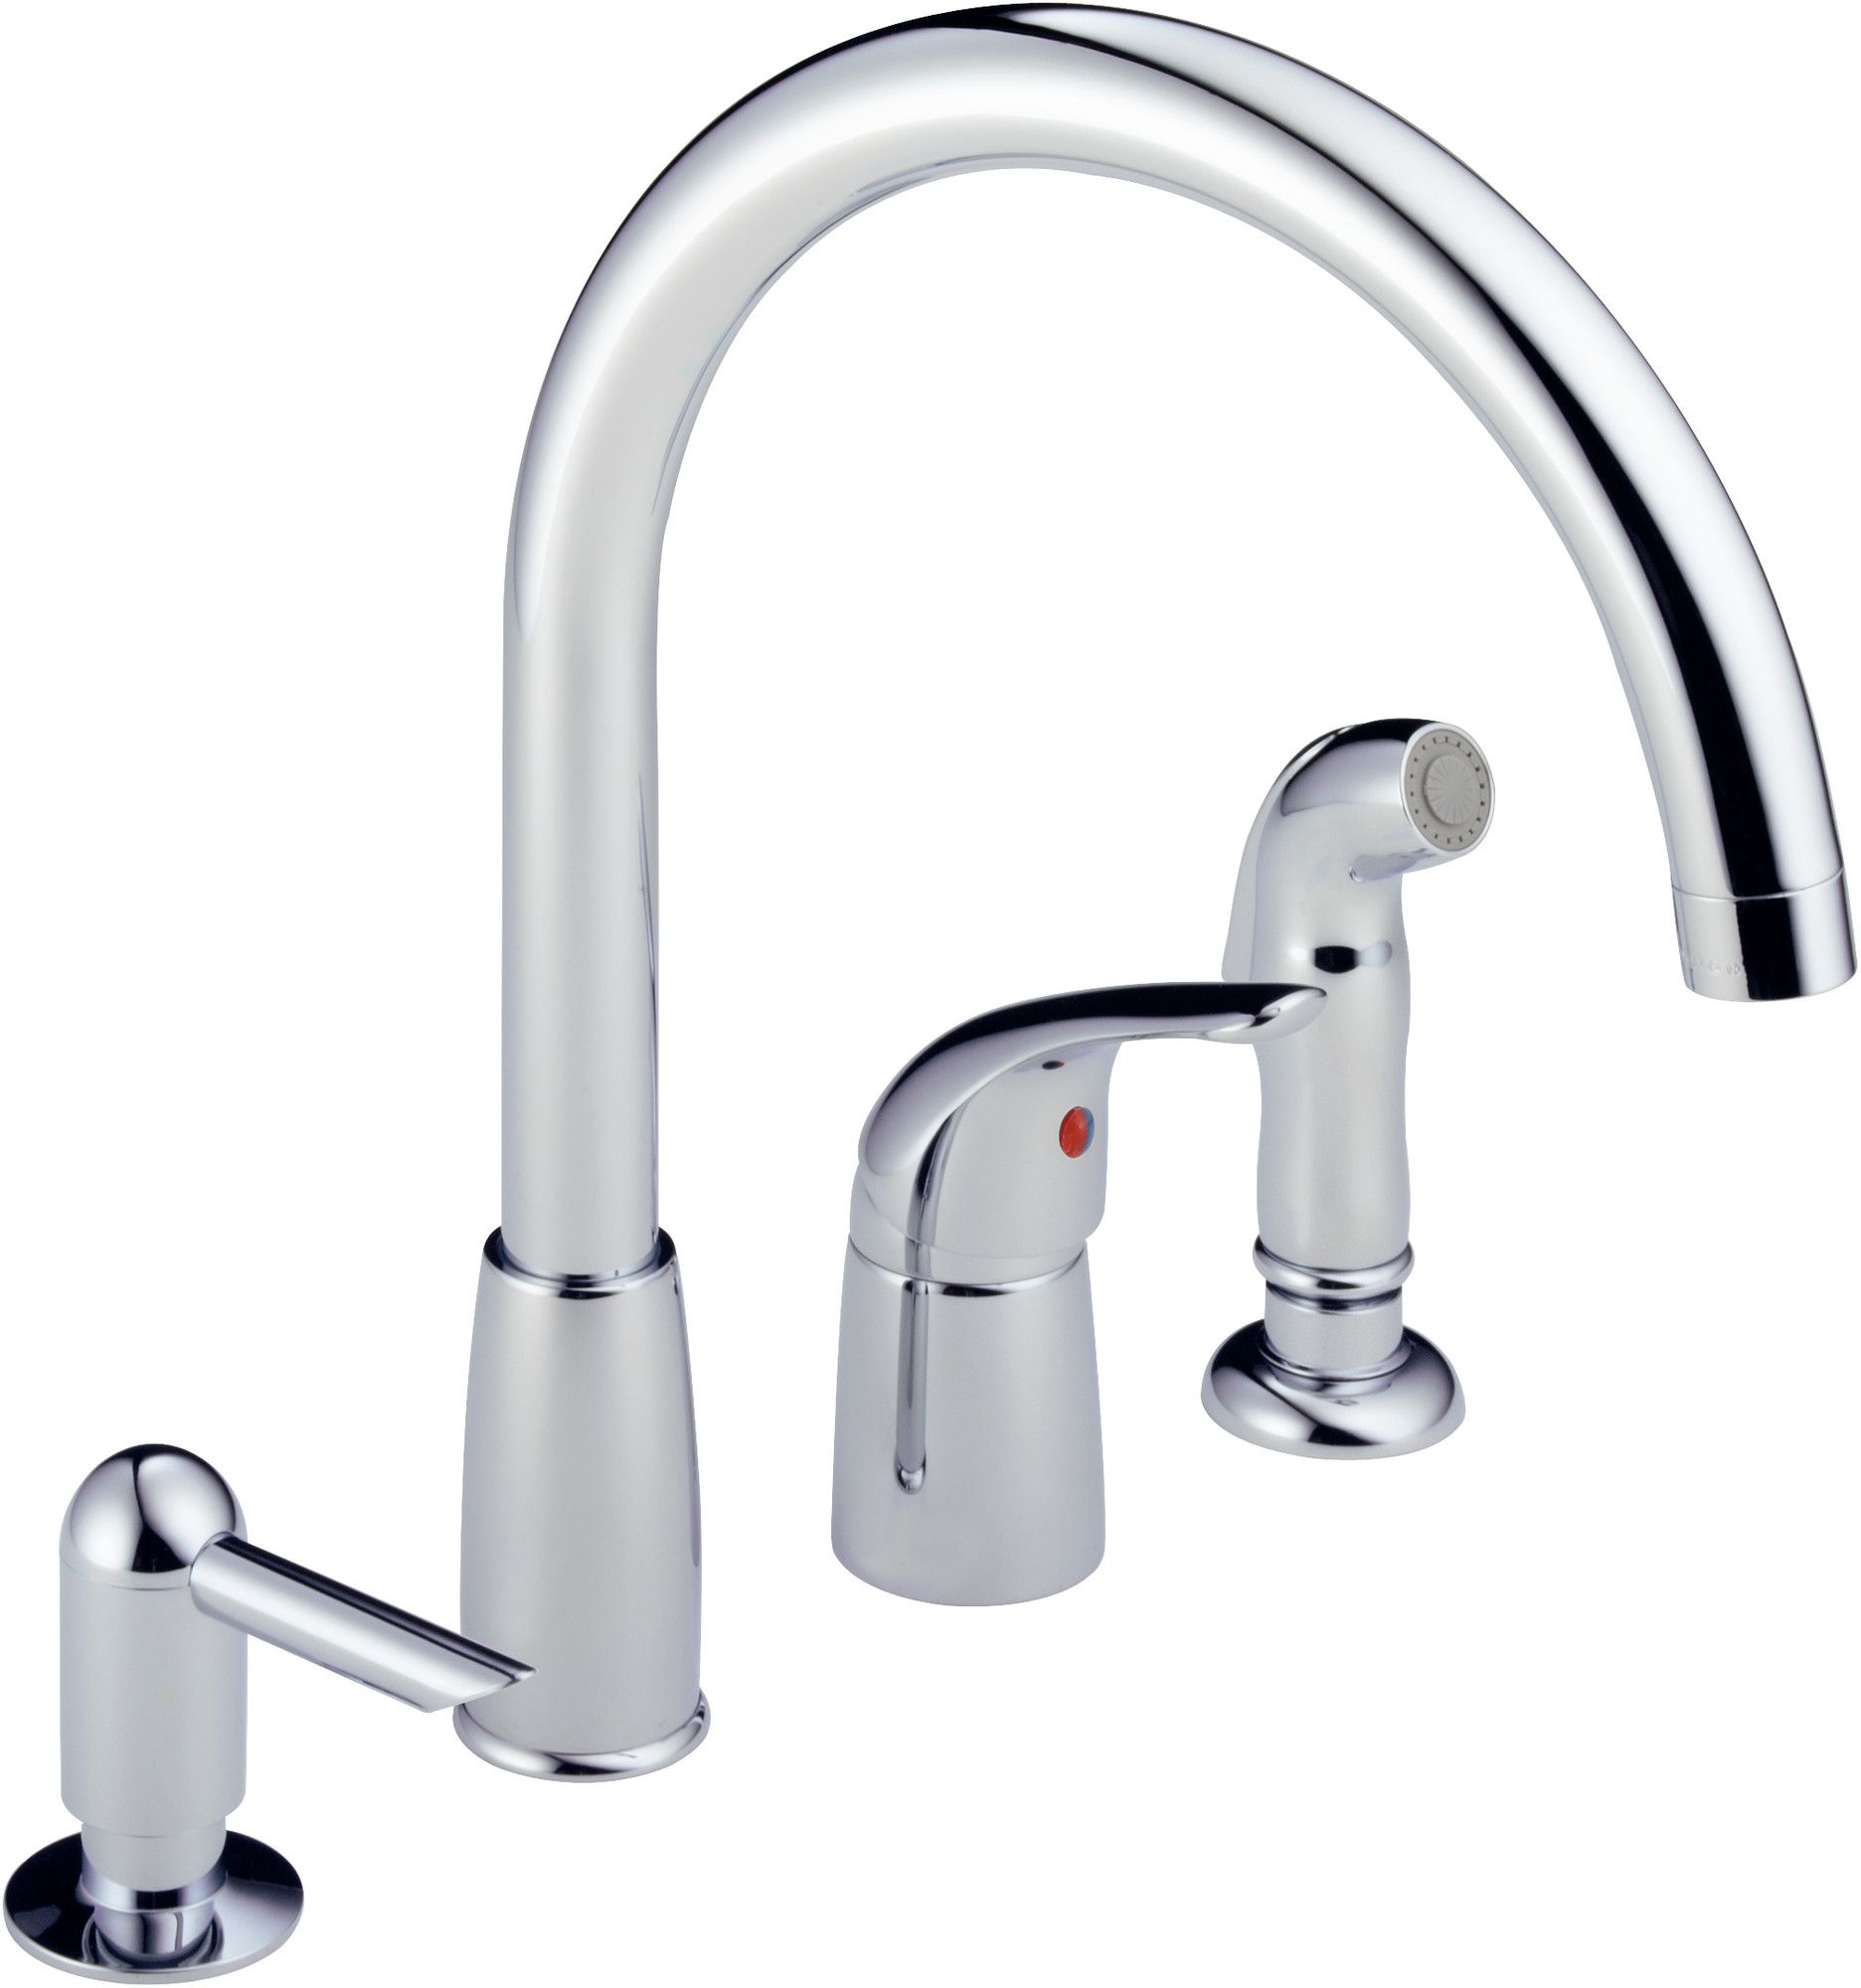 Peerless Faucets Single Handle Widespread Kitchen Faucet with Soap ...